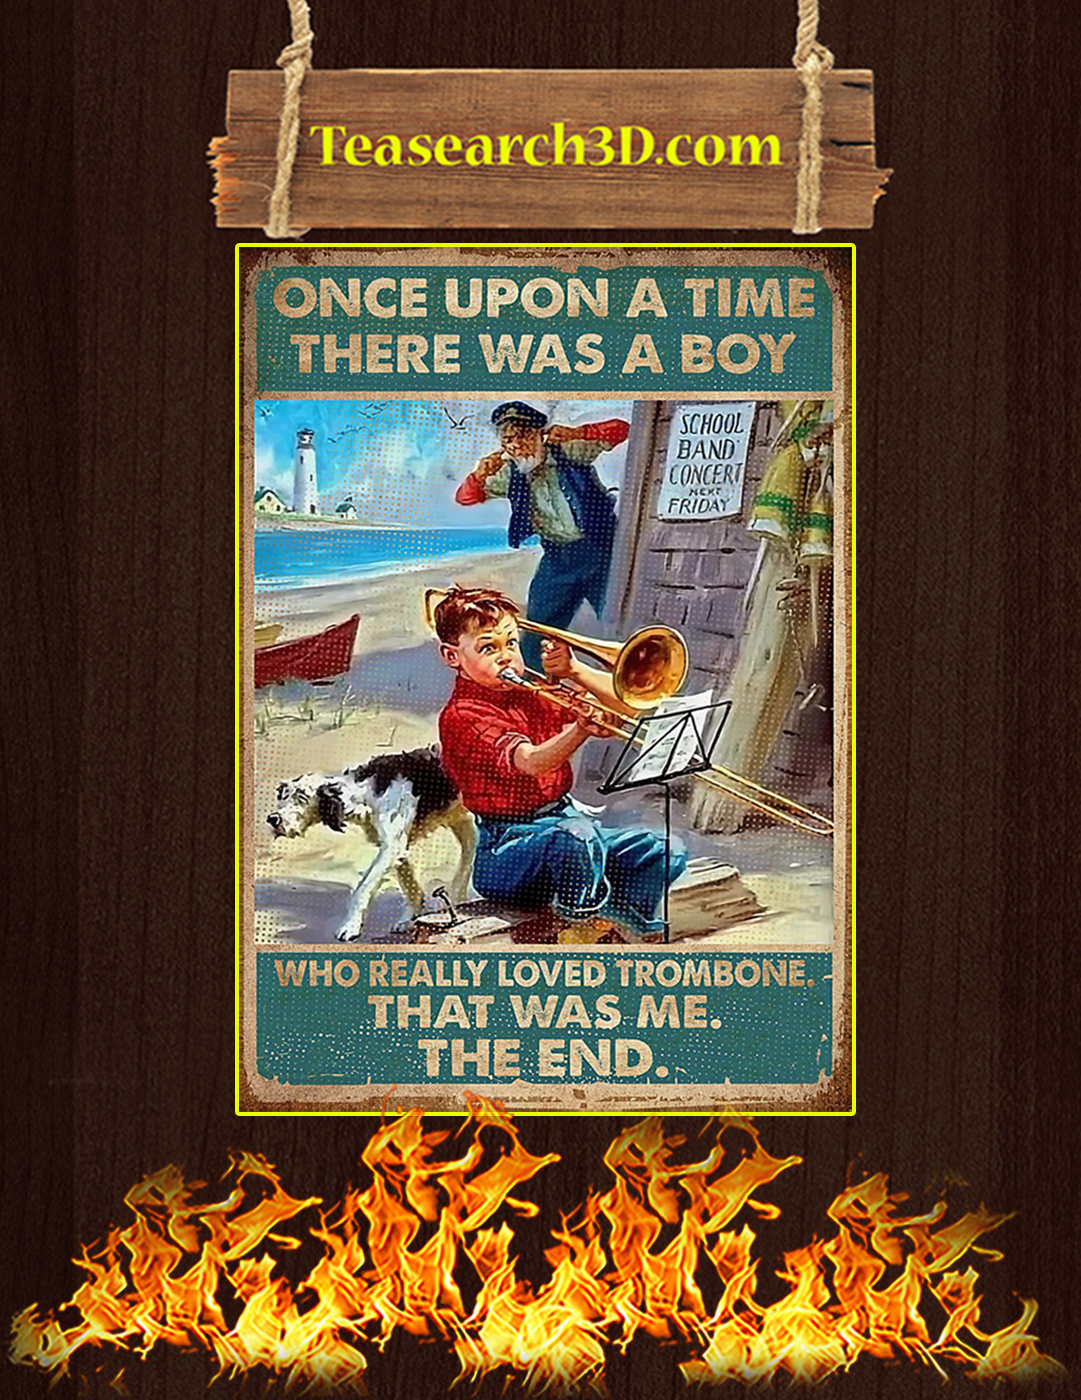 Once upon a time there was a boy who really loved trombone poster A2